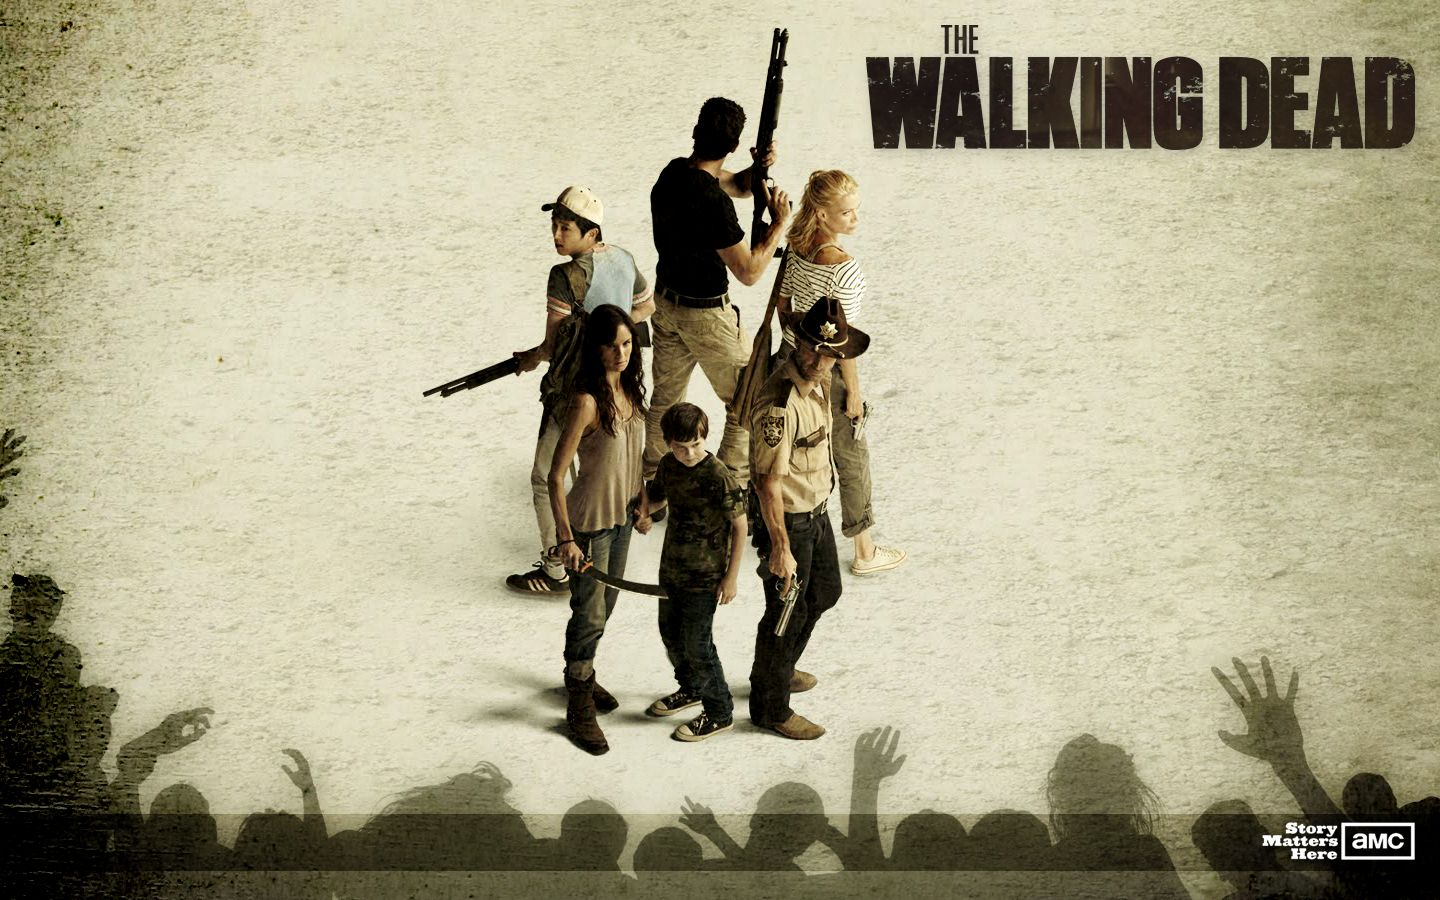 The Walking Dead Free Wallpaper